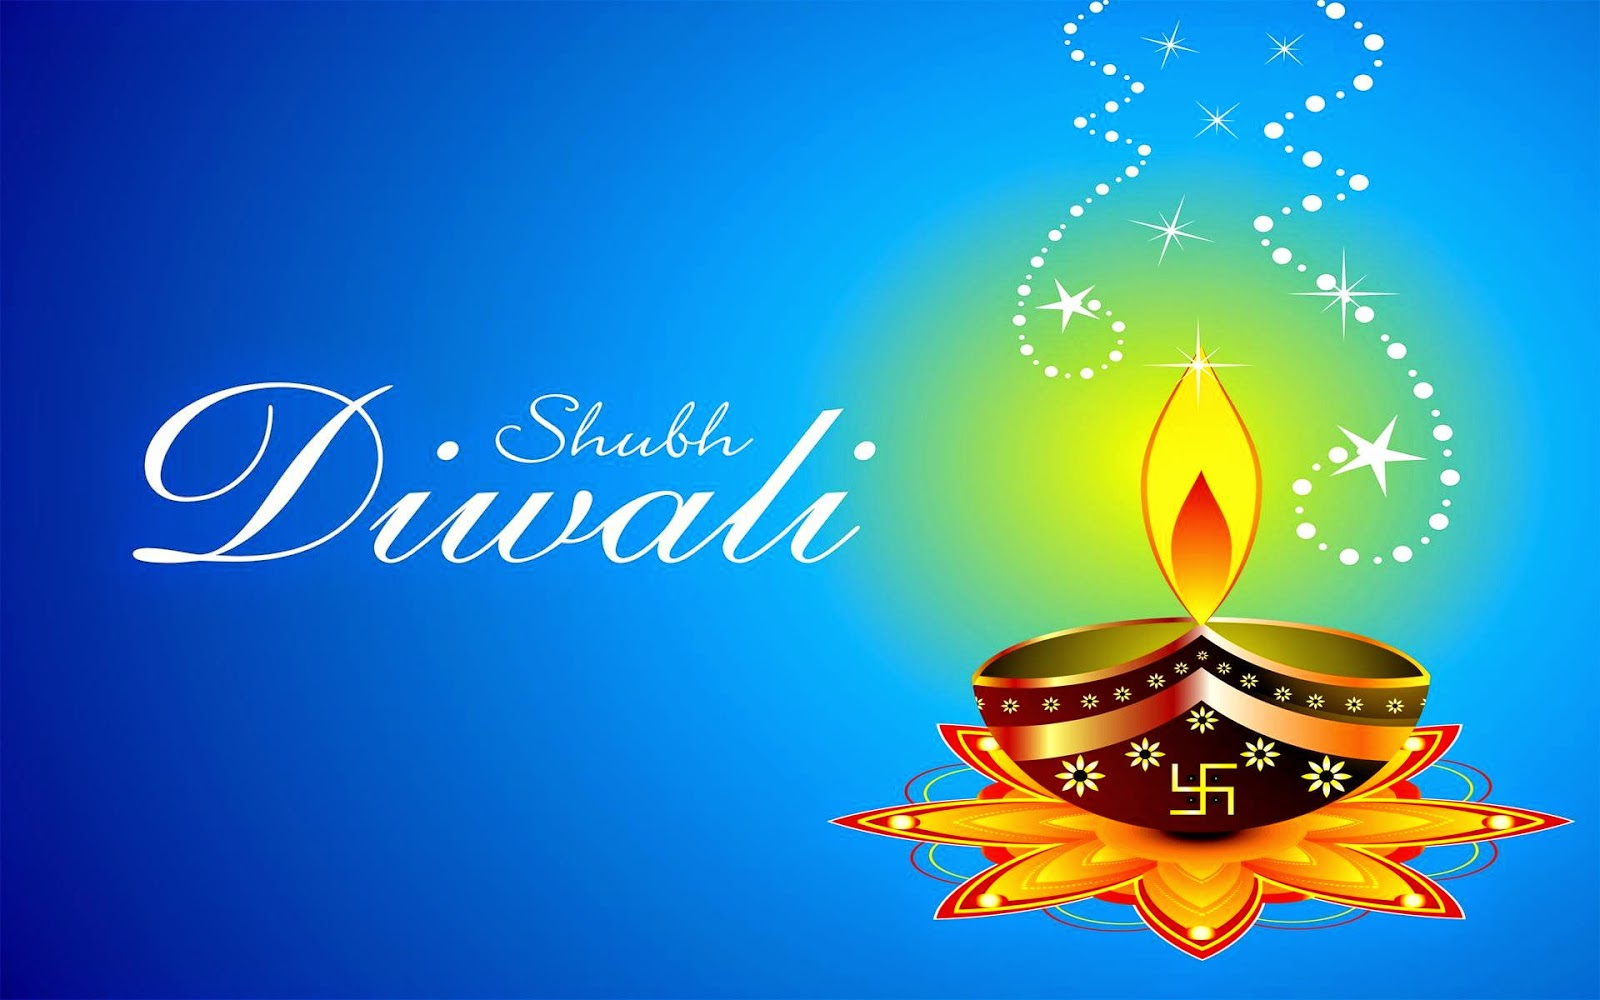 Happy Diwali And New Year Wallpapers: {New *} Happy Diwali 2014 Wishing Images, Greetings Cards